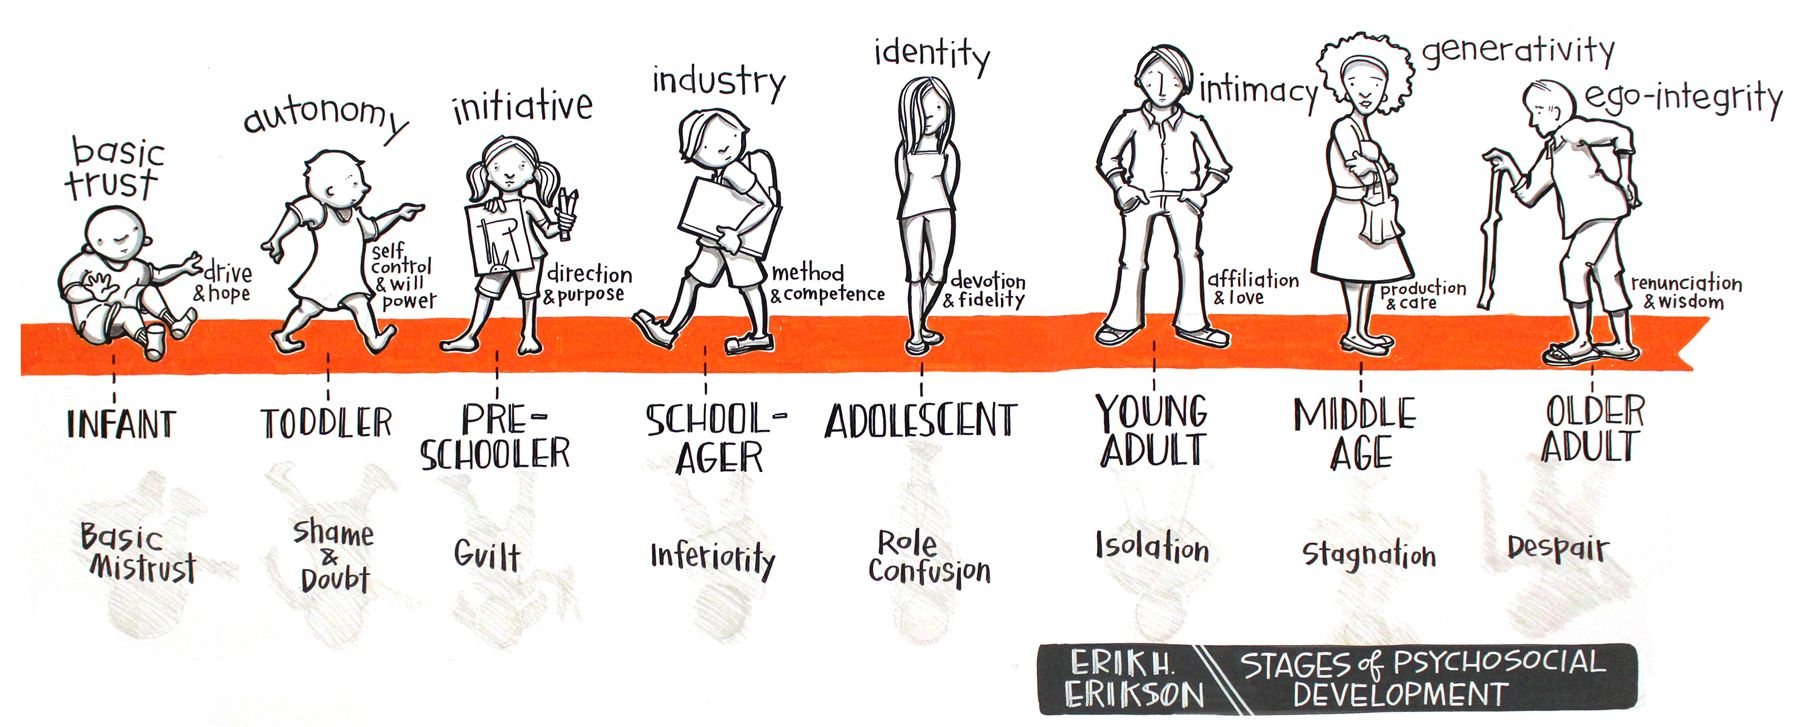 8 stages of adult development